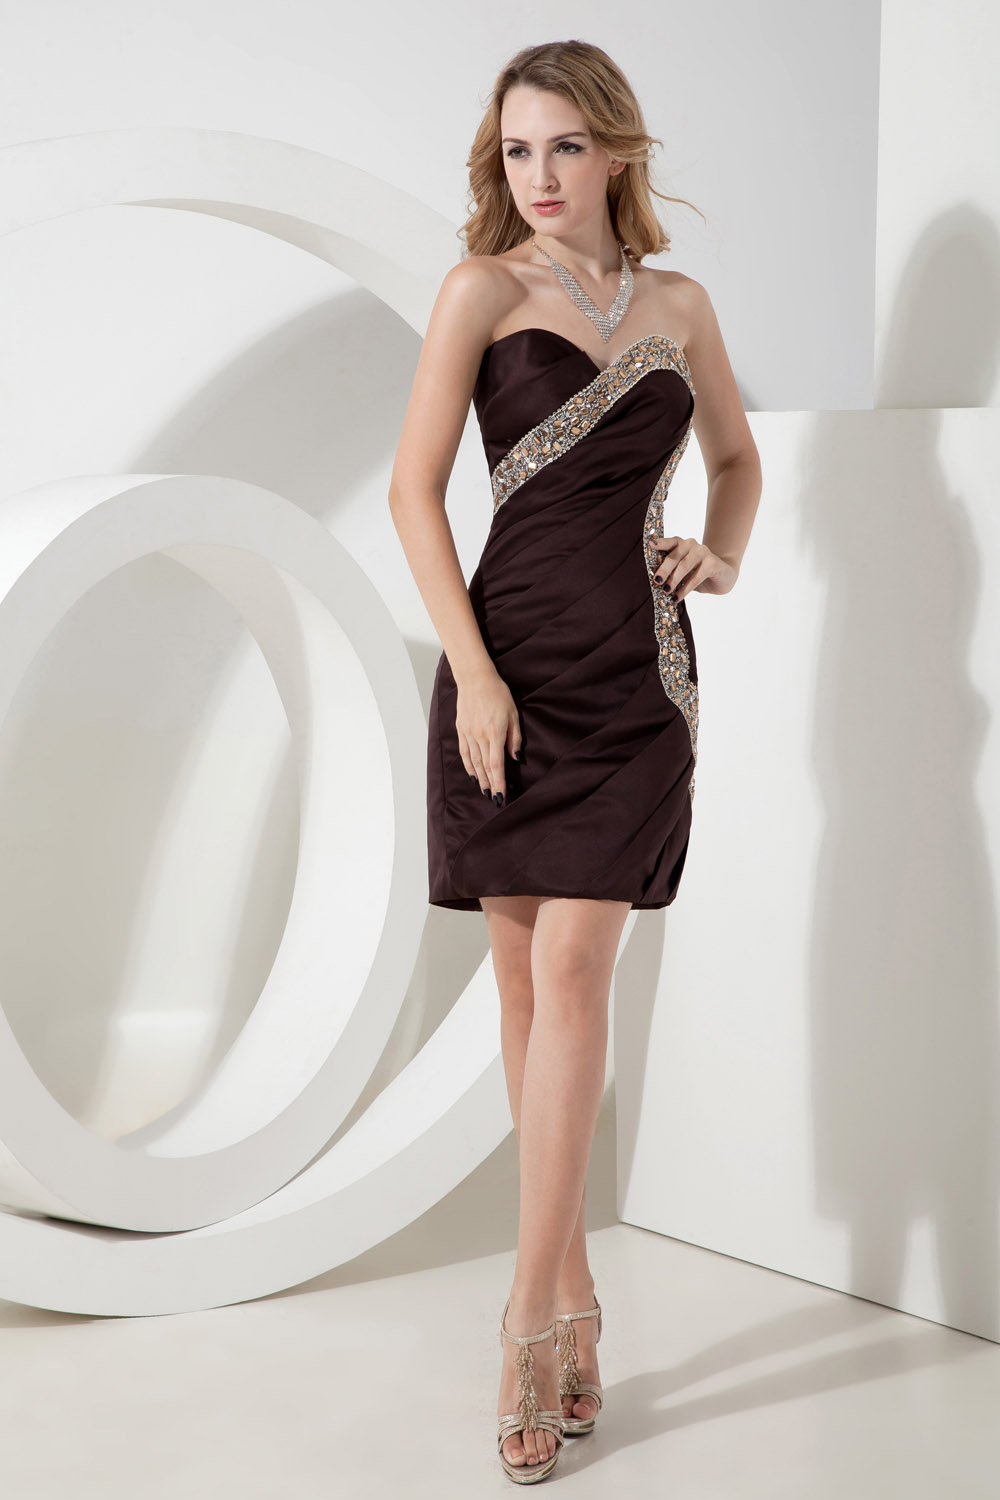 Sheath/Column Strapless Knee-length Chiffon Homecoming Dress